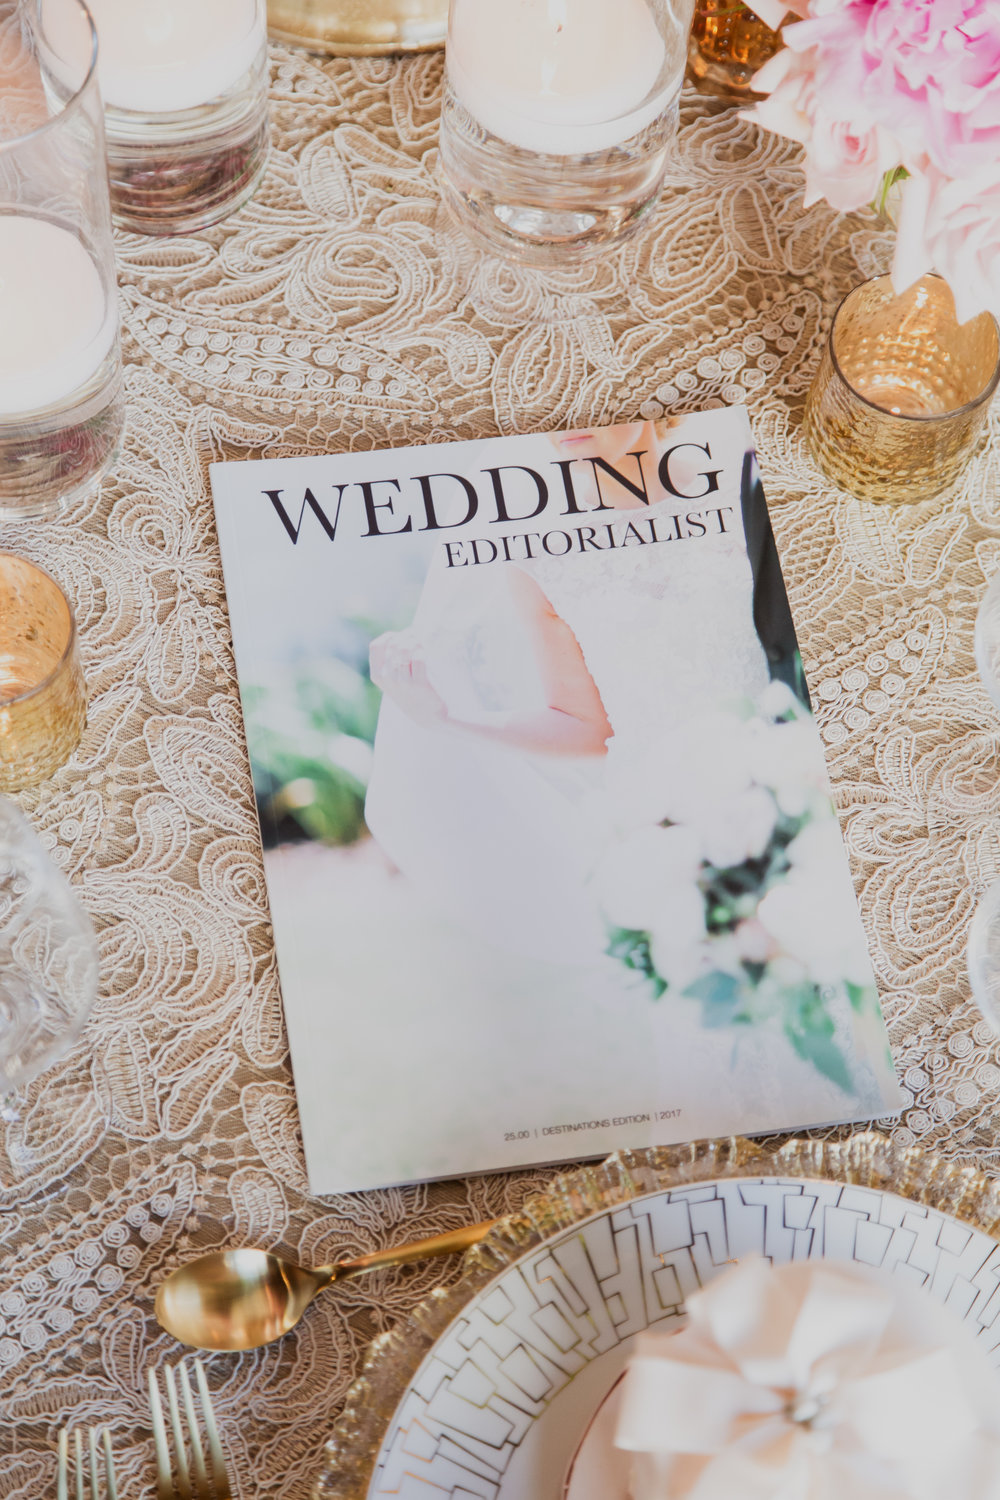 Real Wedding Magazine! Contact our editors now to create your personalized wedding magazines! Made to order for couples in love. Photo by Adam Frazier.